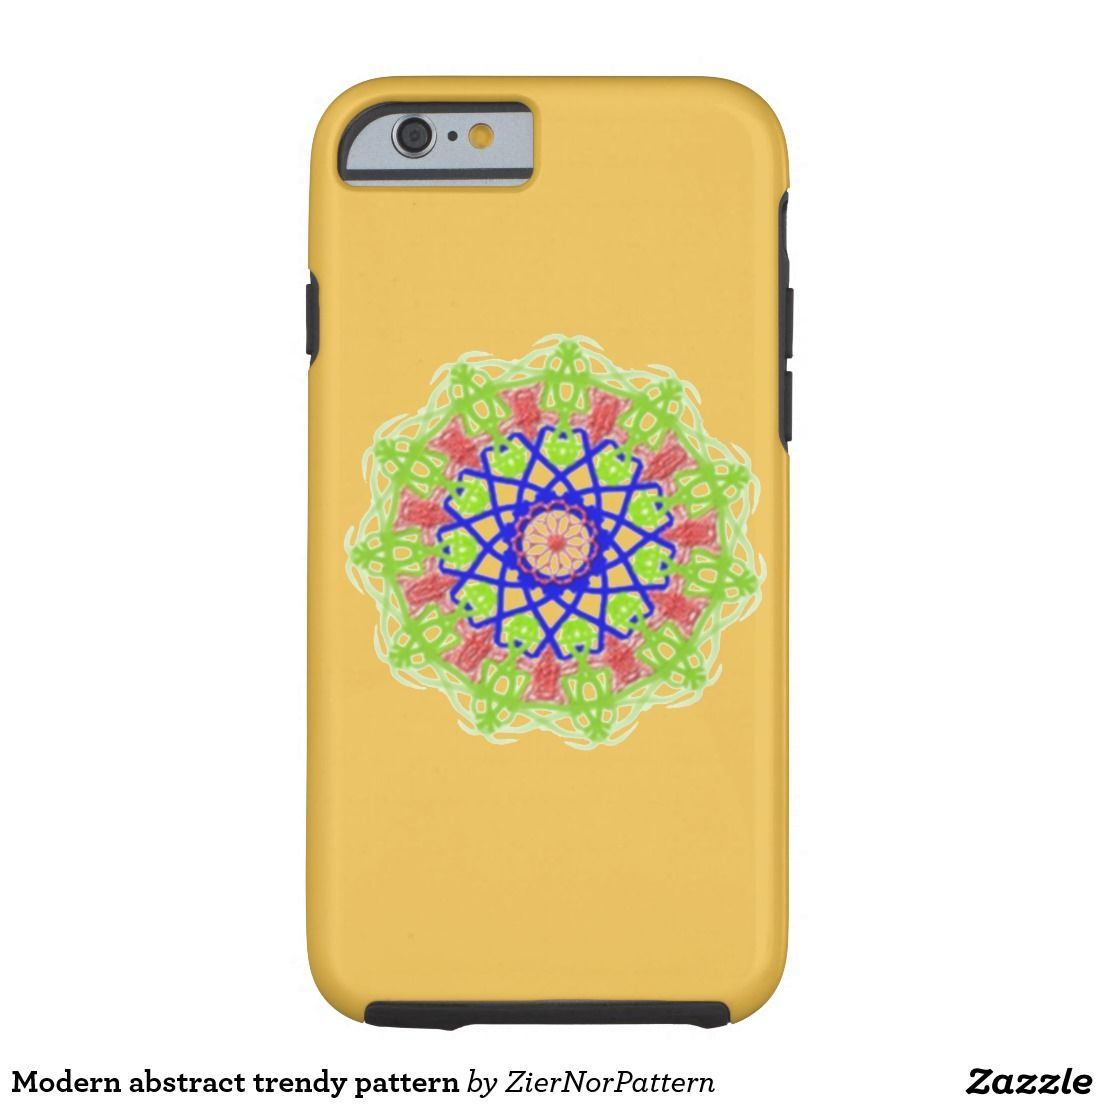 Modern Abstract Trendy Pattern Tough IPhone 6 Case